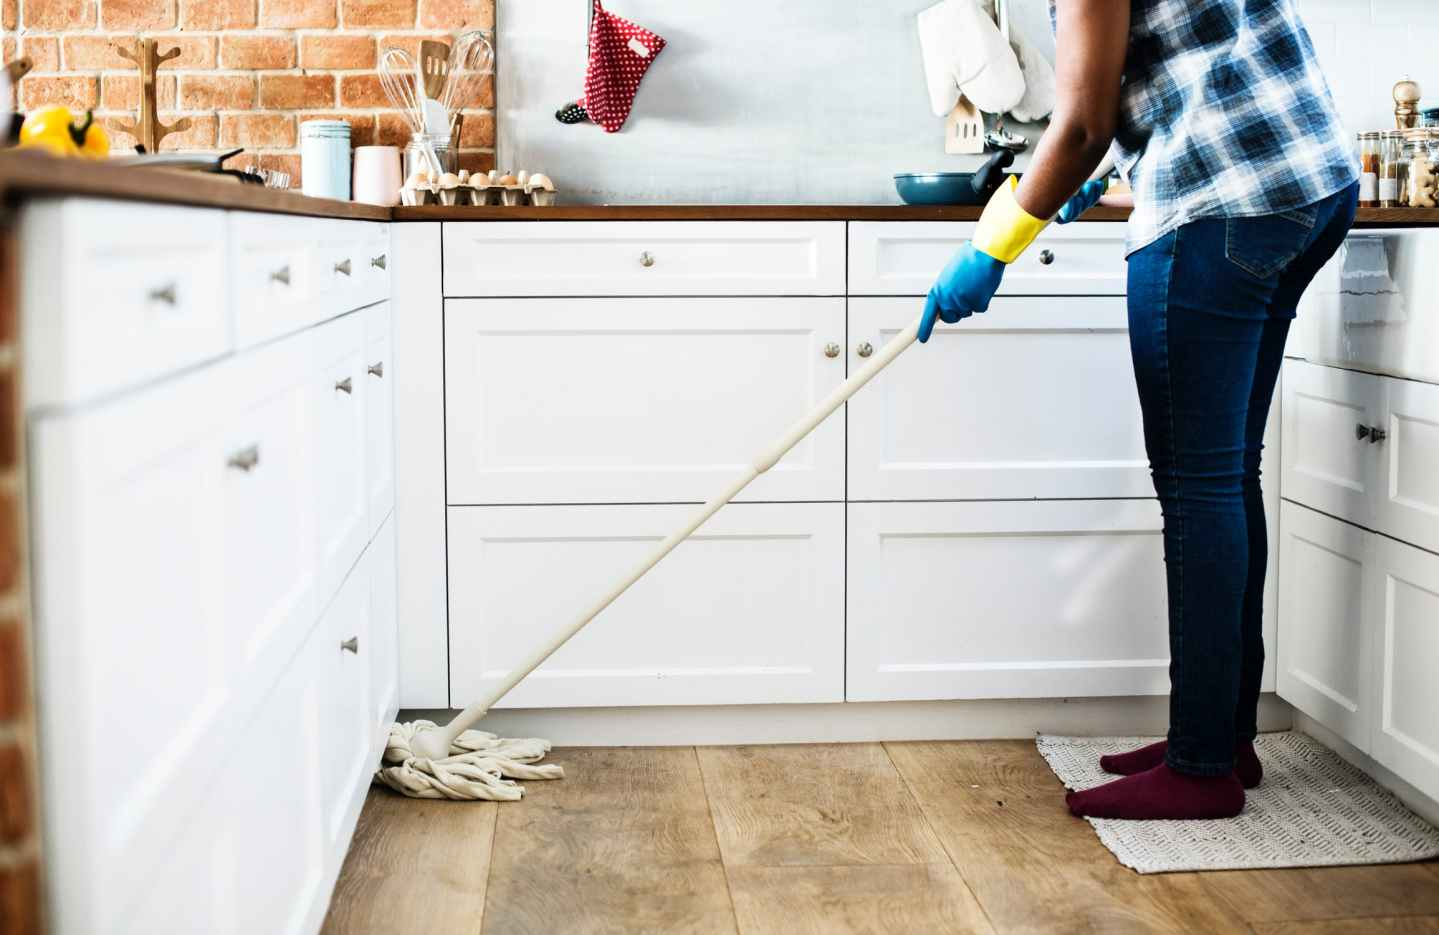 Grandma's Goop and Other Old-School Cleaning Tips That Still Work Today